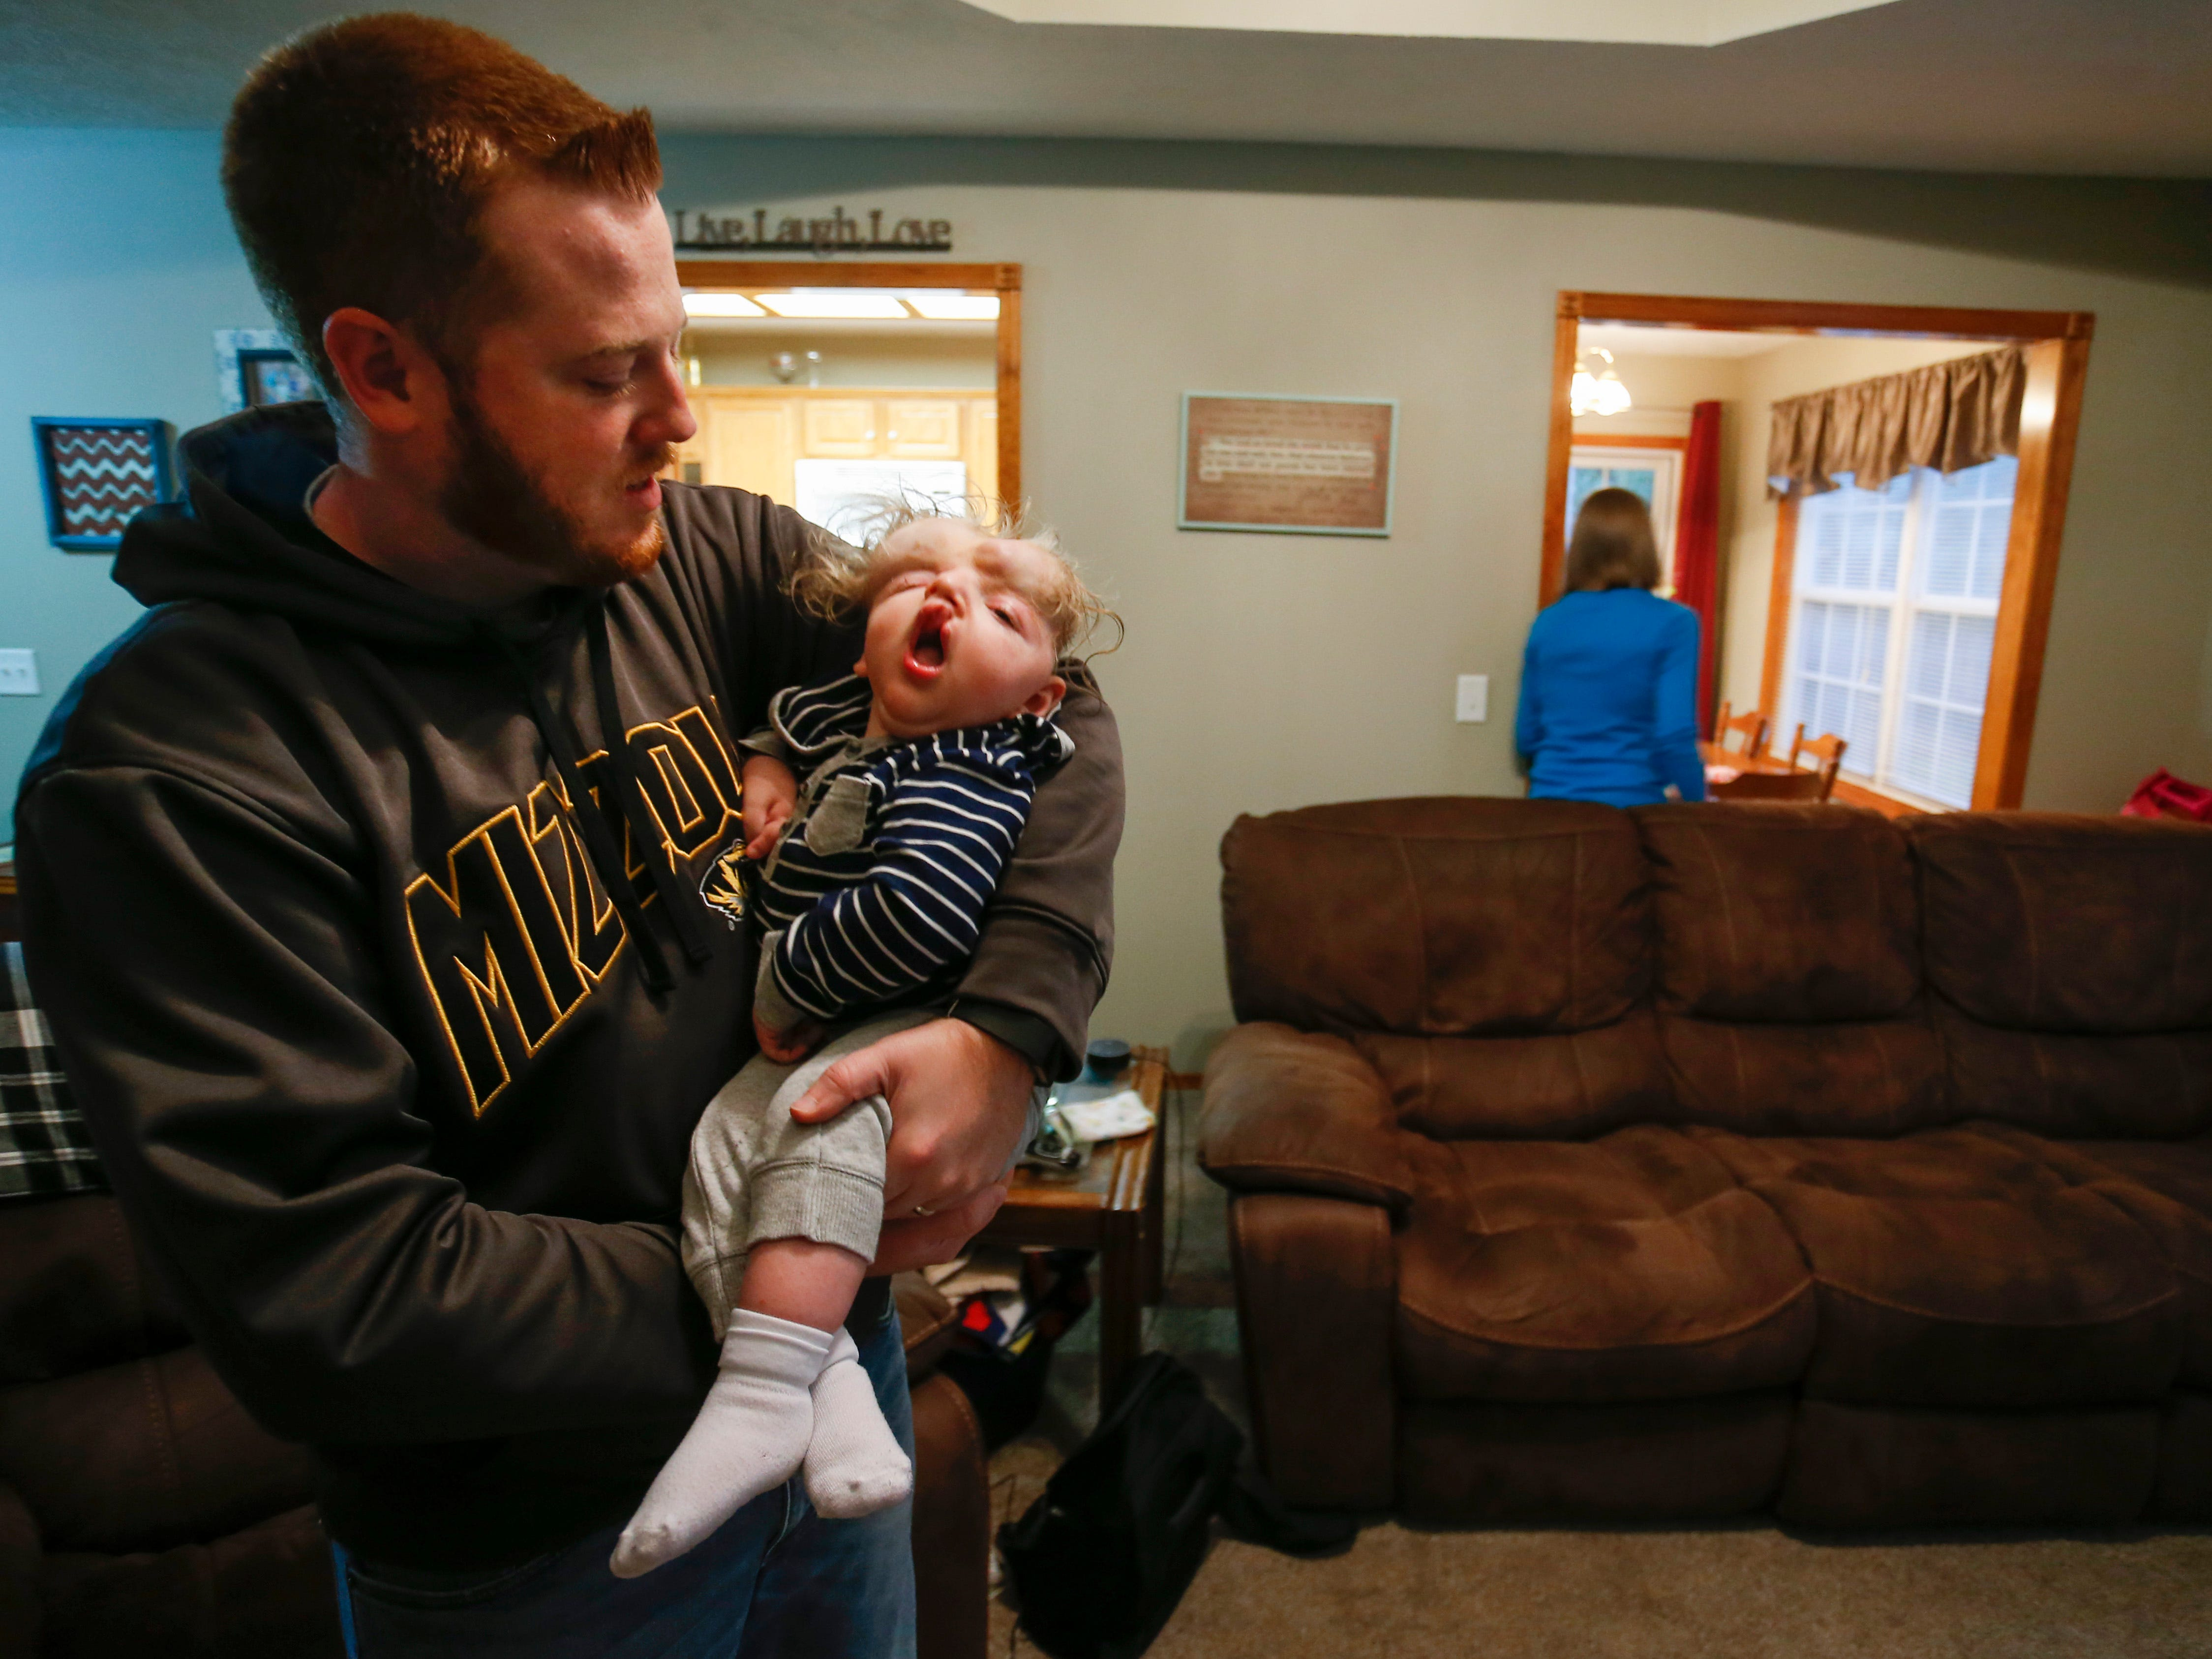 Tom Masterson holds his one-year-old son Owen at their home on Thursday, October 11, 2018. Owen was born missing the top part of his skull and was not expected to survive childbirth.